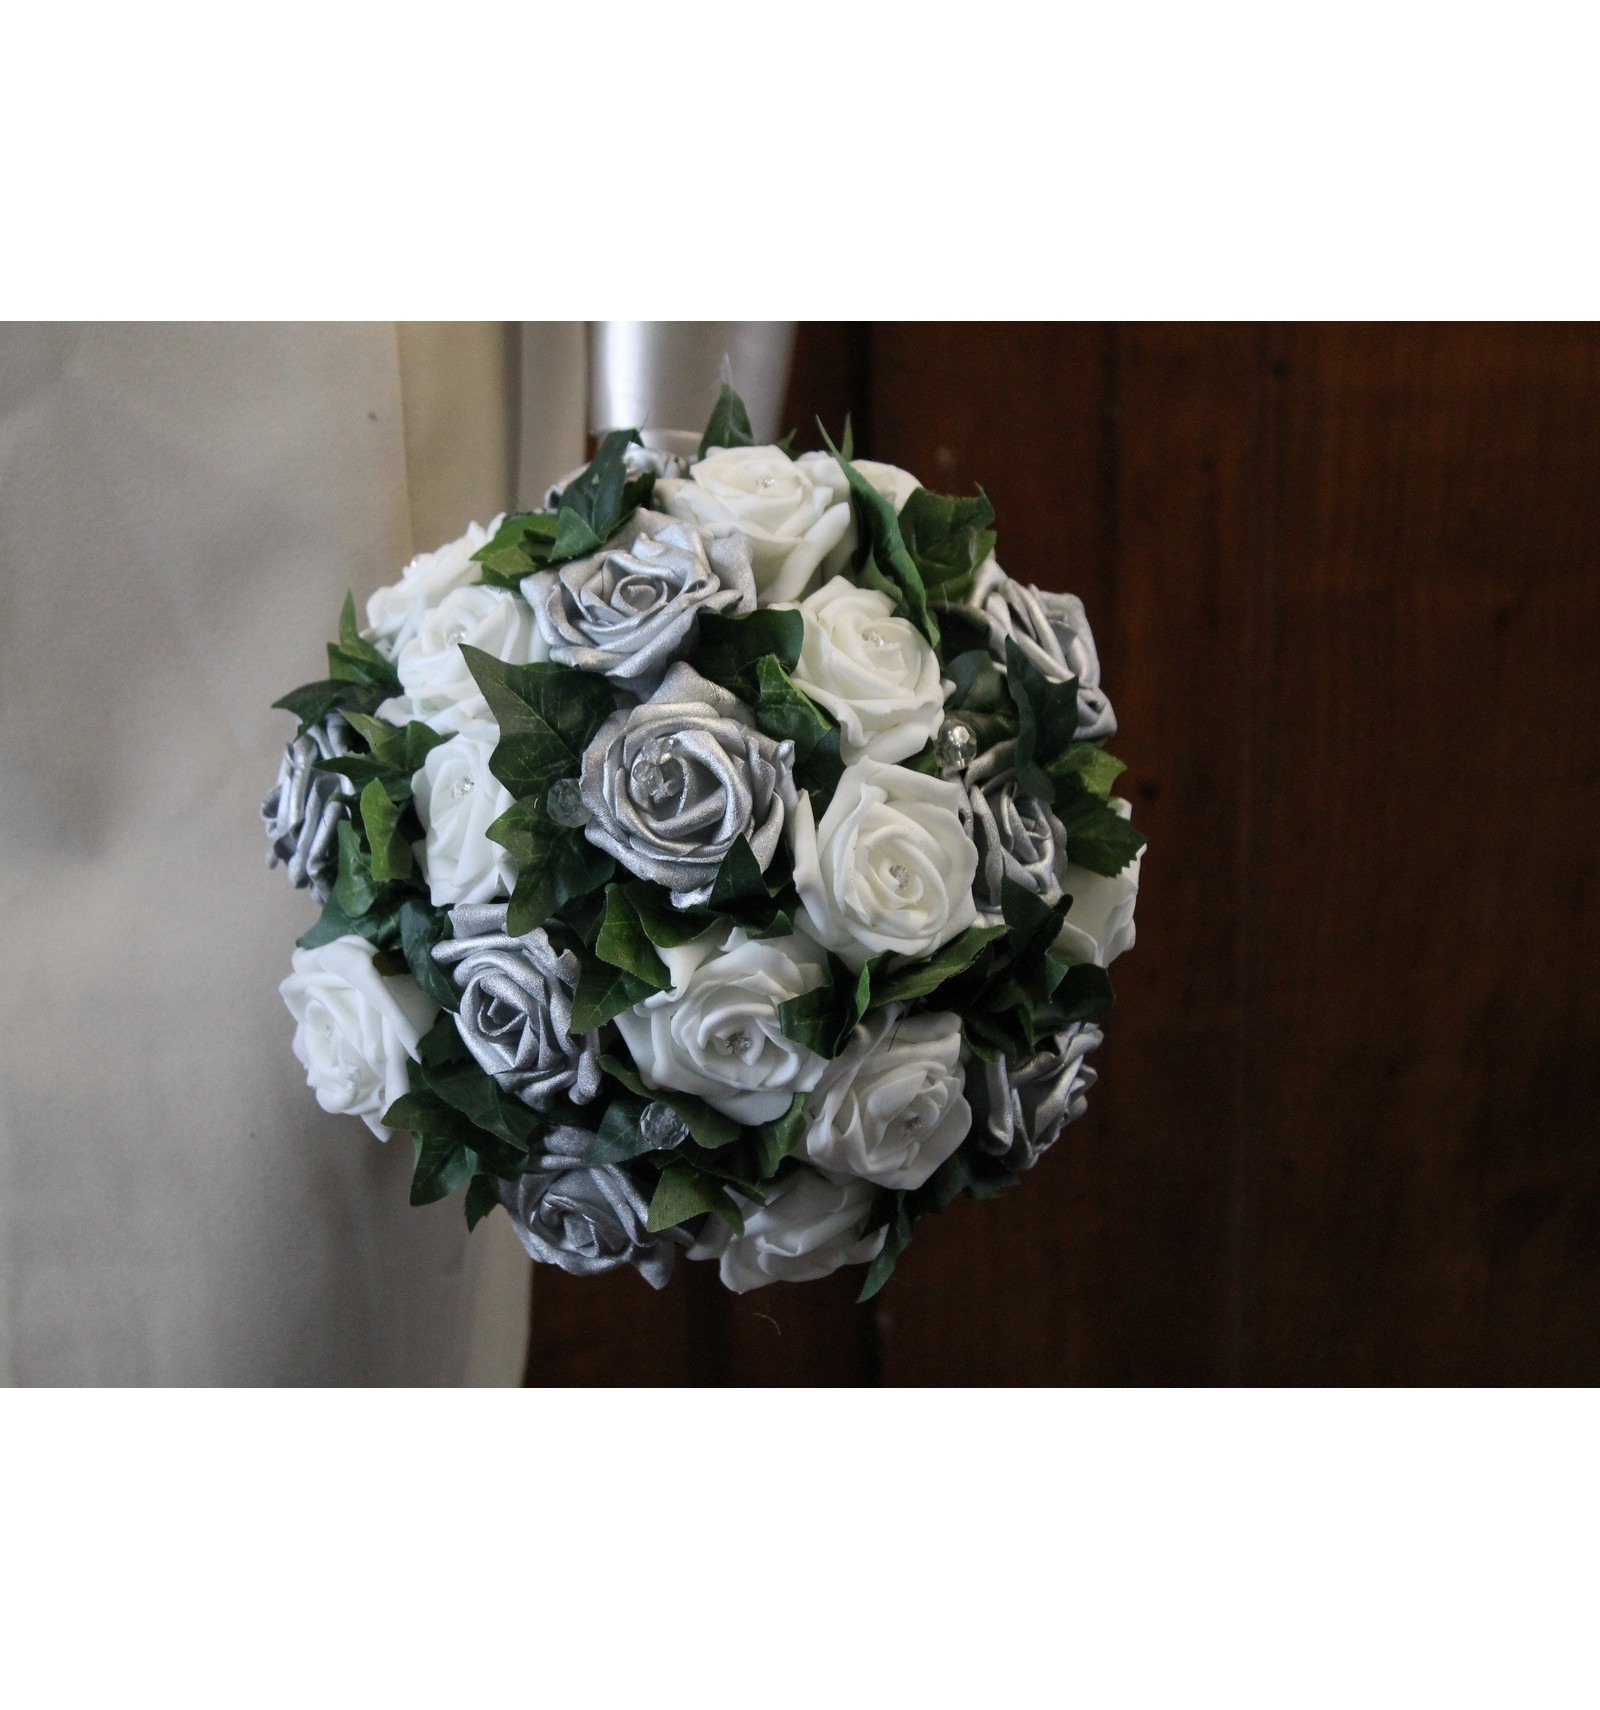 bouquet de mariage blanc et gris argent avec roses feuilles diamant bouquet de la mariee. Black Bedroom Furniture Sets. Home Design Ideas